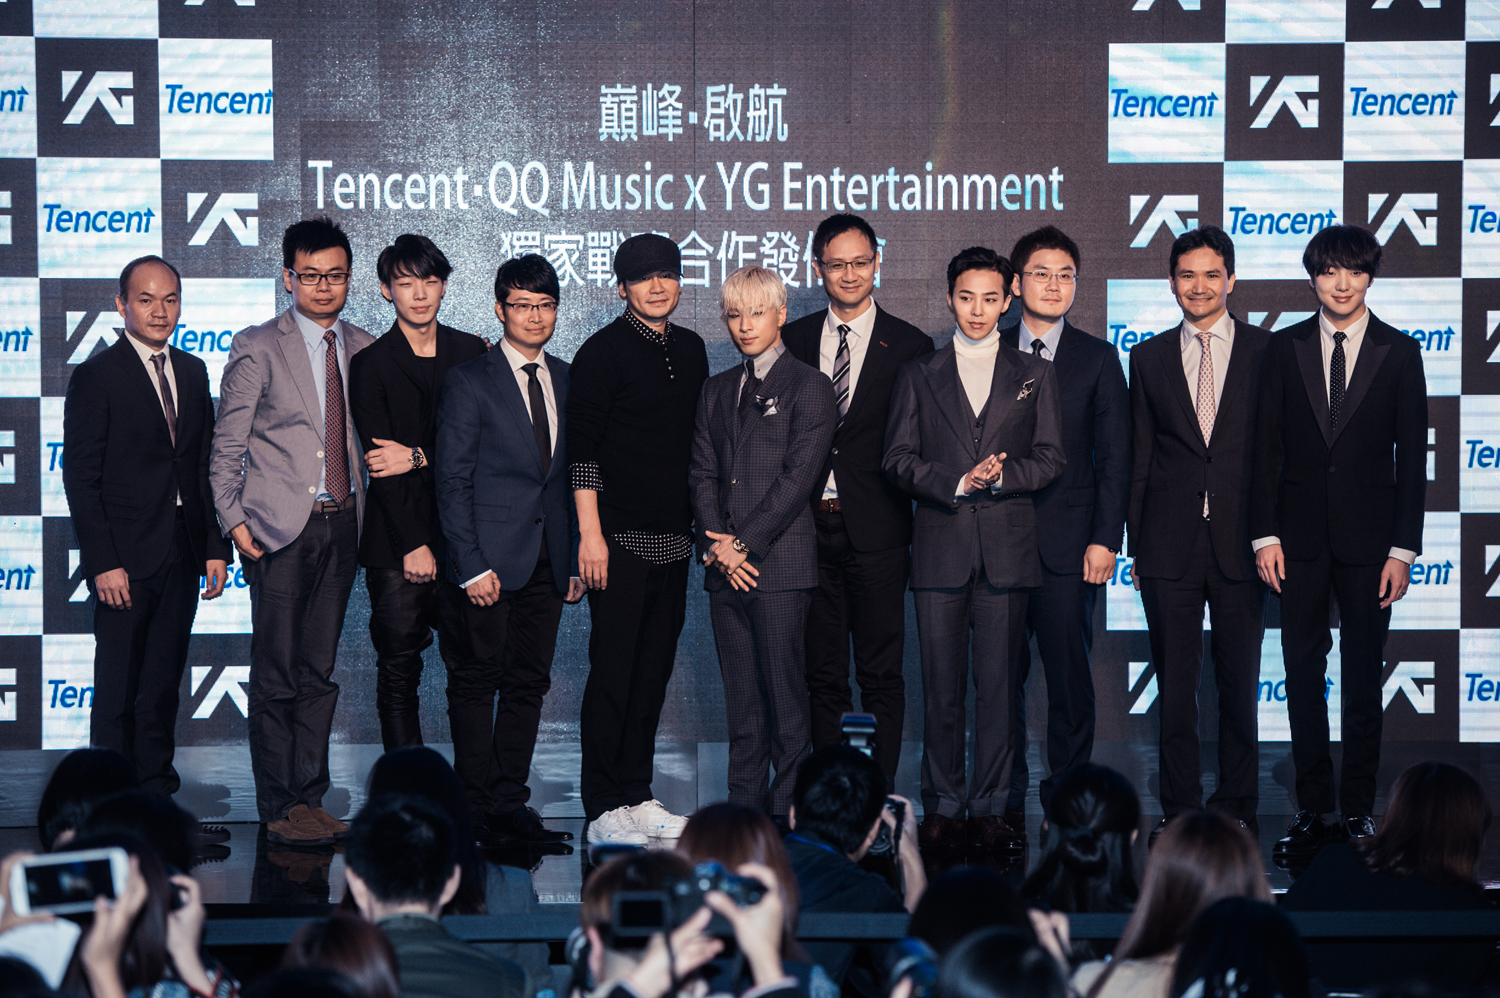 South Korean pop culture taking Asia by storm - Nikkei Asian